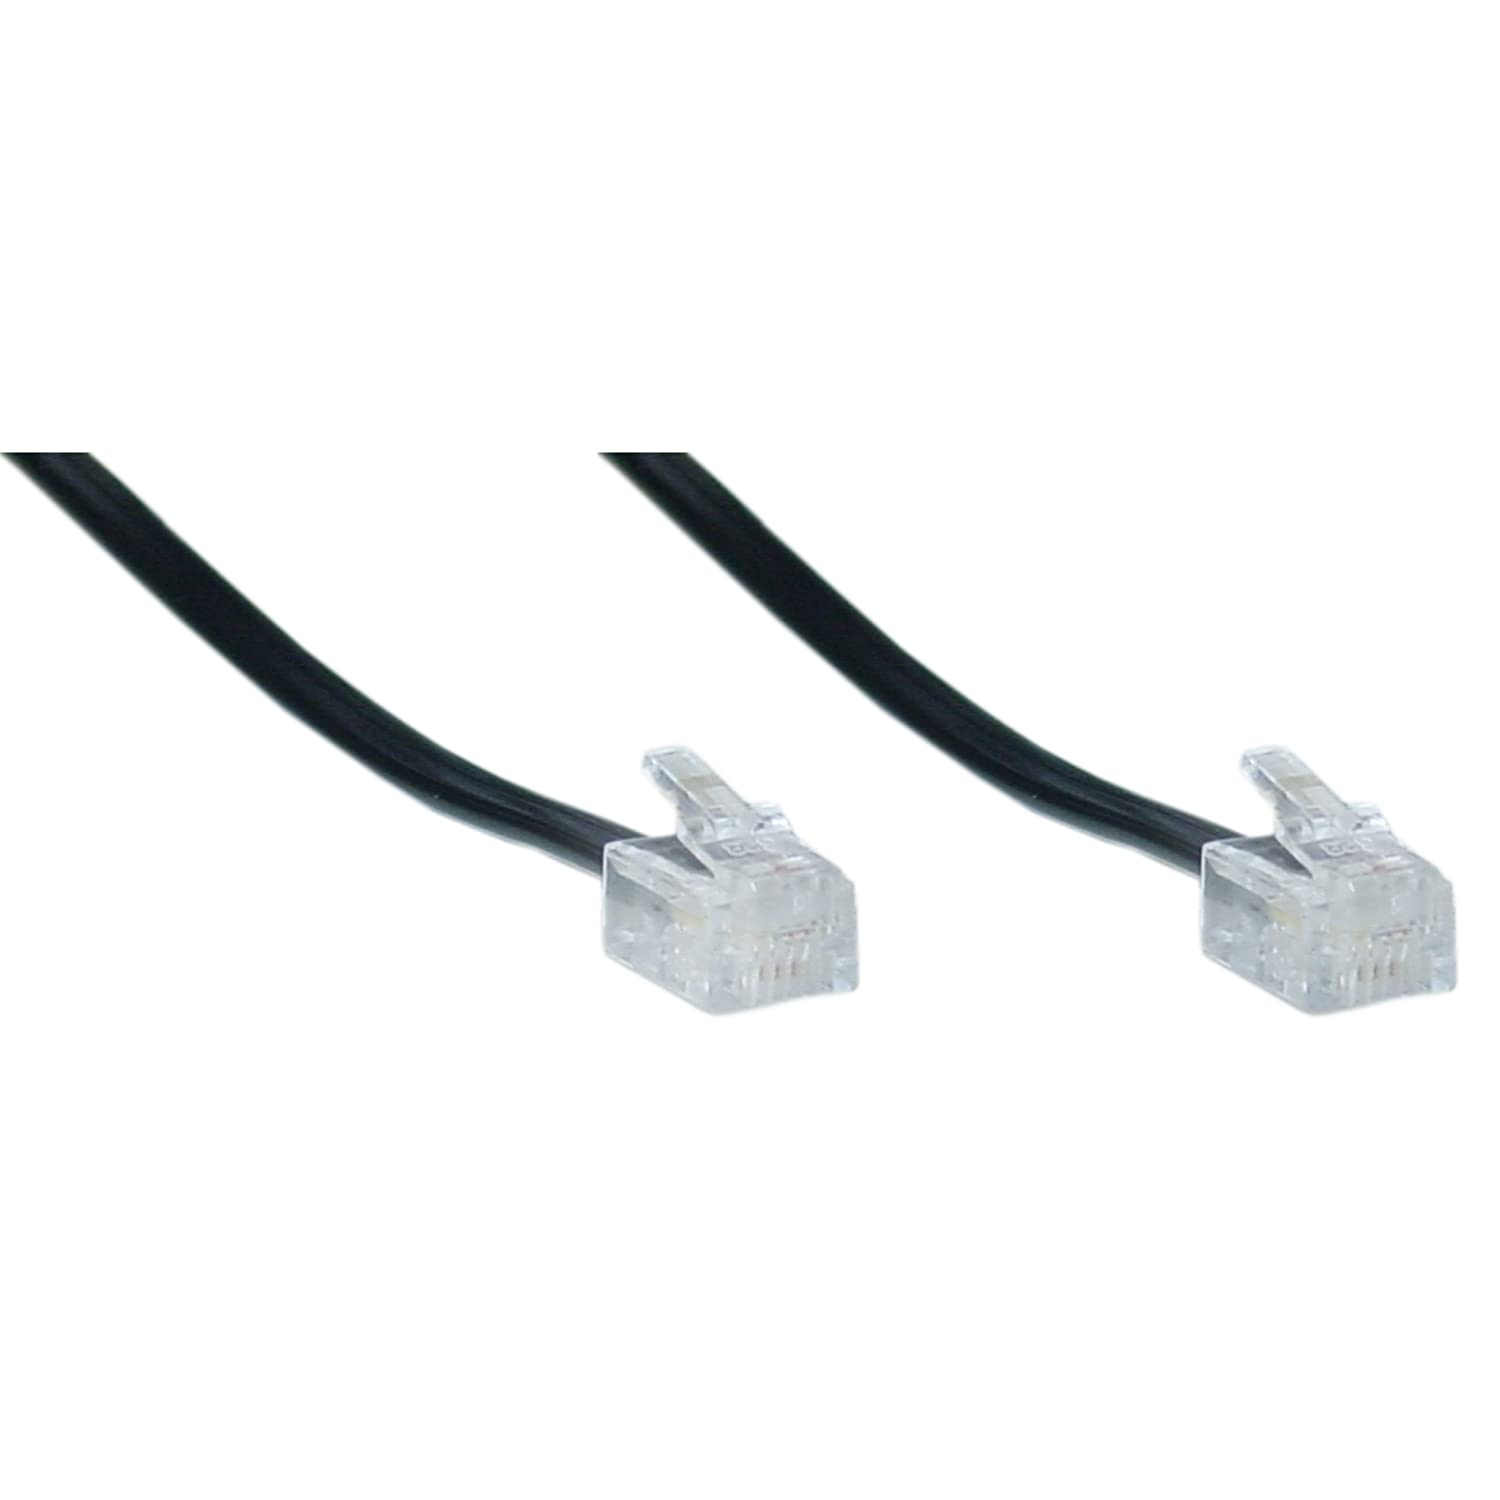 6 inch 4 conductor black telephone phone line cable cord wire- used for one  or two phone line phones rj11 / rj14 type end- commonly used in most  residential